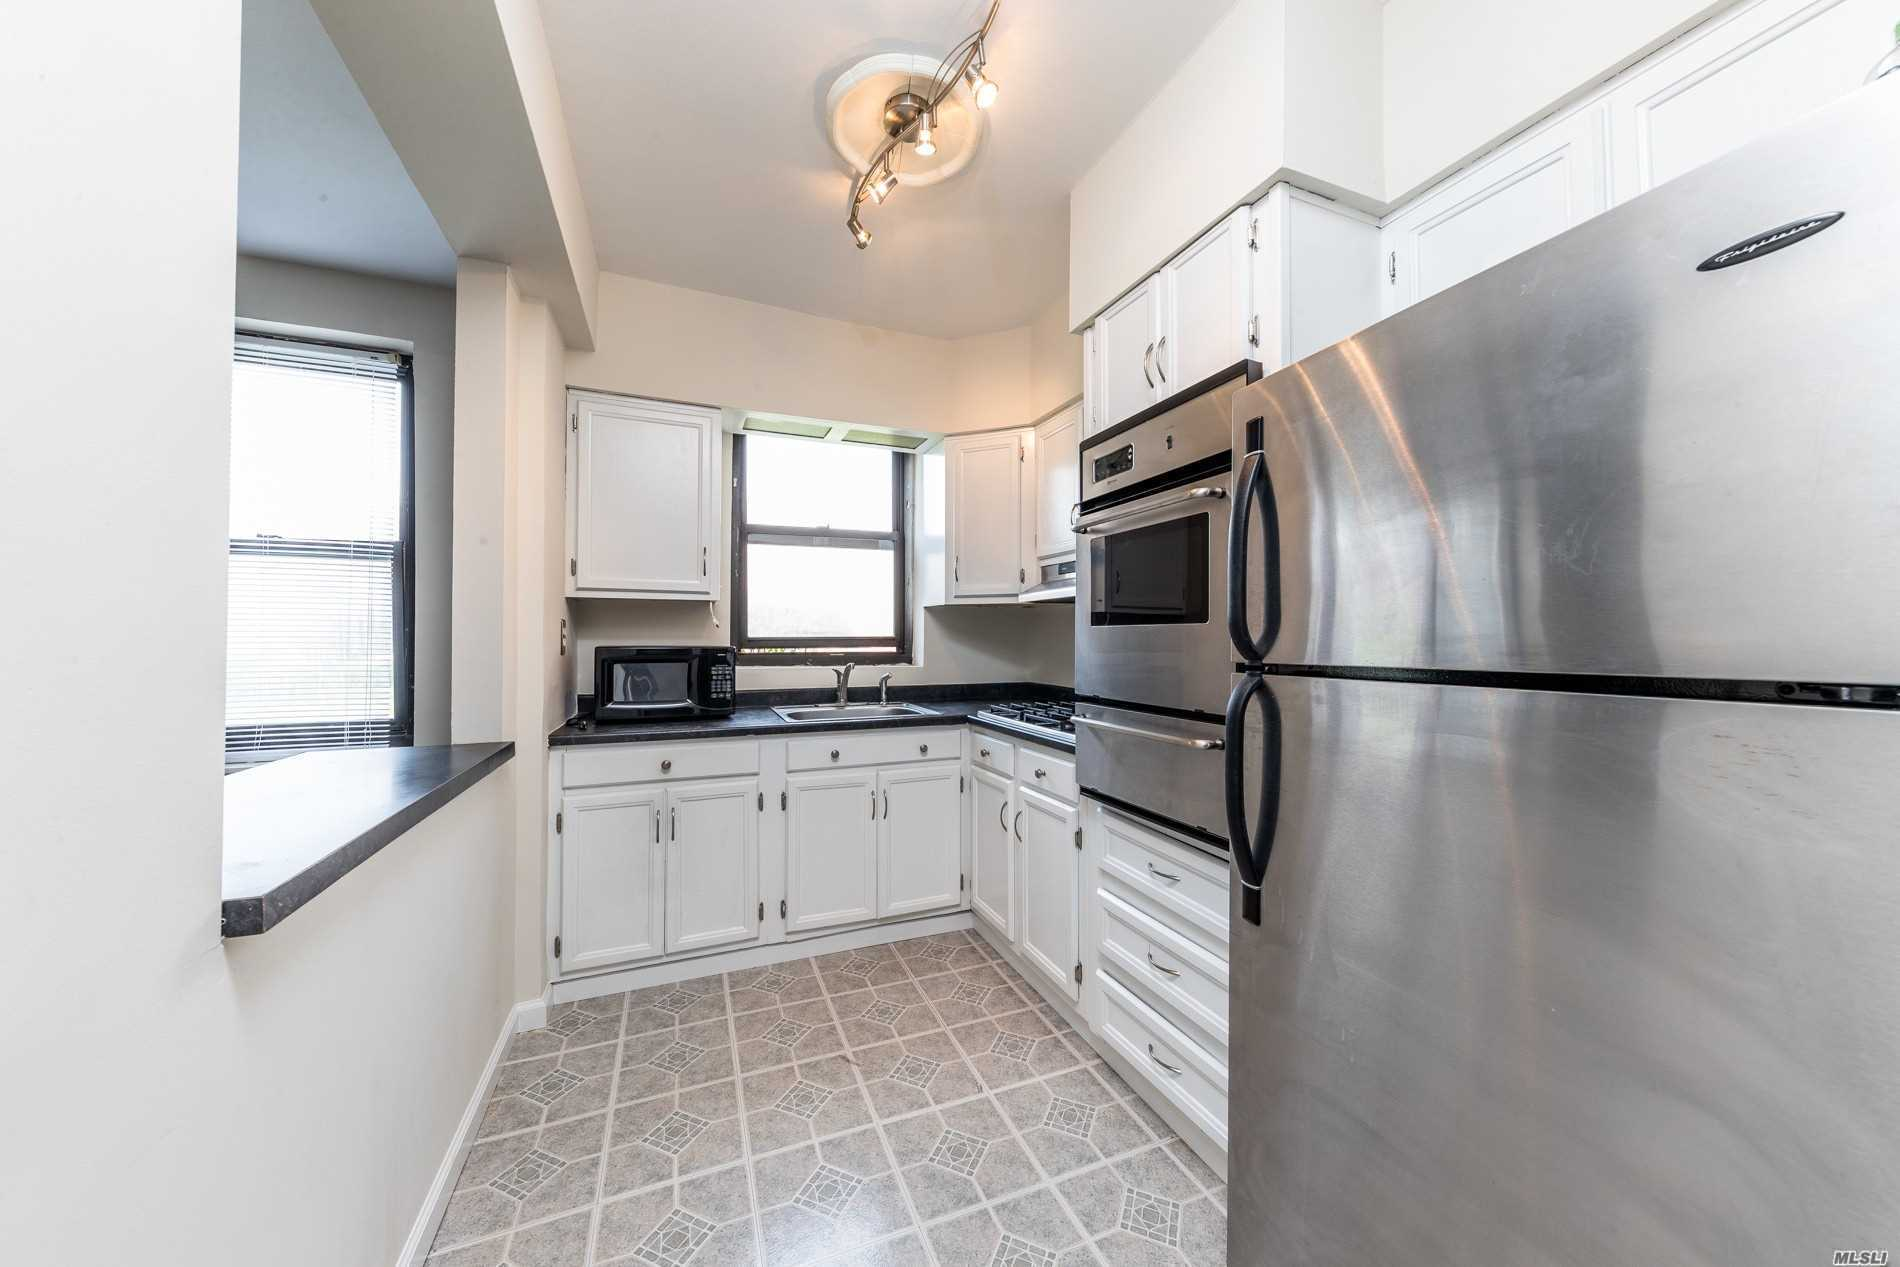 Floors Just Refinished!! Lovely Rockville Centre First Floor, 2 Bedroom Co-Op Rental, Includes All Utilities, Spacious Unit With Updated Stainless Appliances. Includes Laundry Facilities In Basement. No Smoking On Building Premises. No Pets. Close To Lirr Restaurants, And Rvc Shopping!